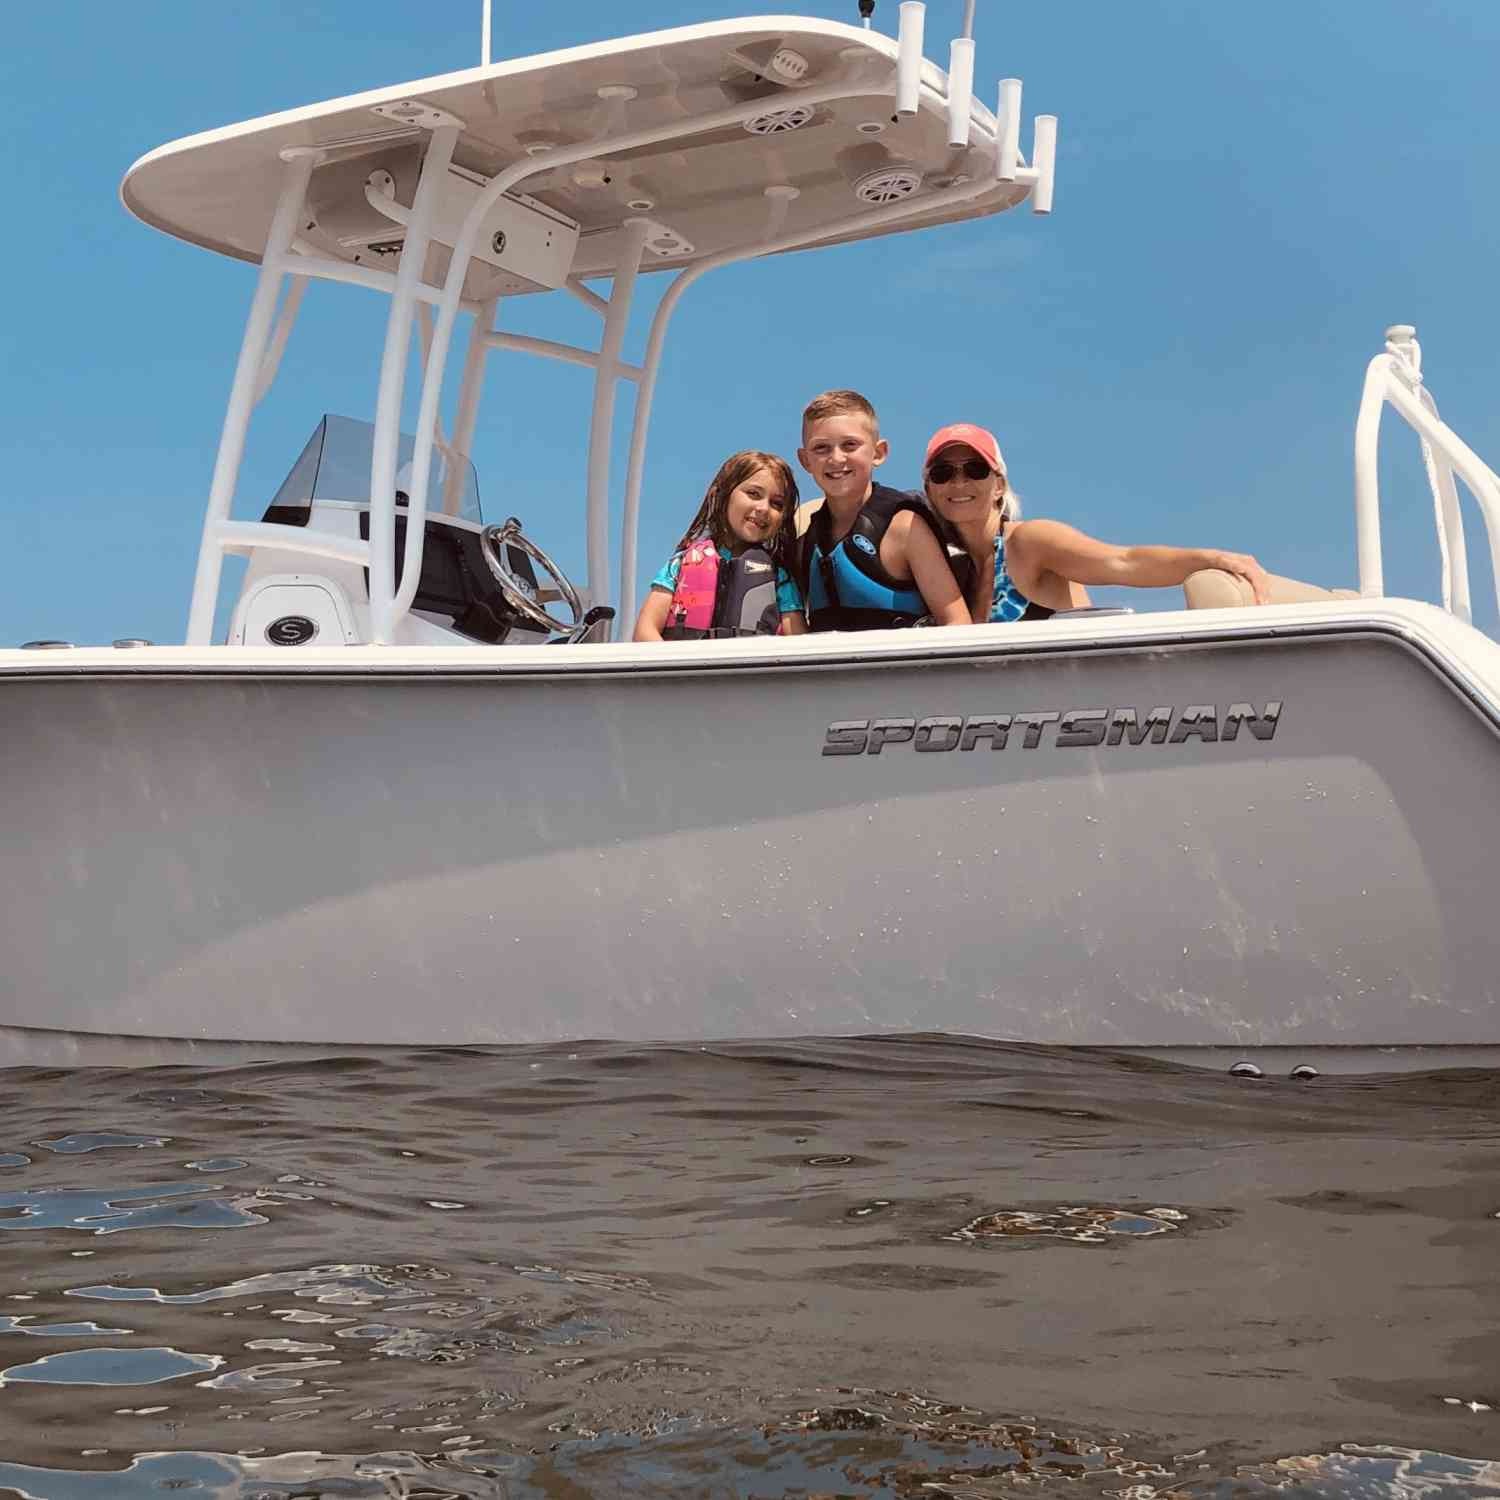 Title: Family approved - On board their Sportsman Heritage 231 Center Console - Location: Lake Erie, Ohio. Participating in the Photo Contest #SportsmanJuly2019